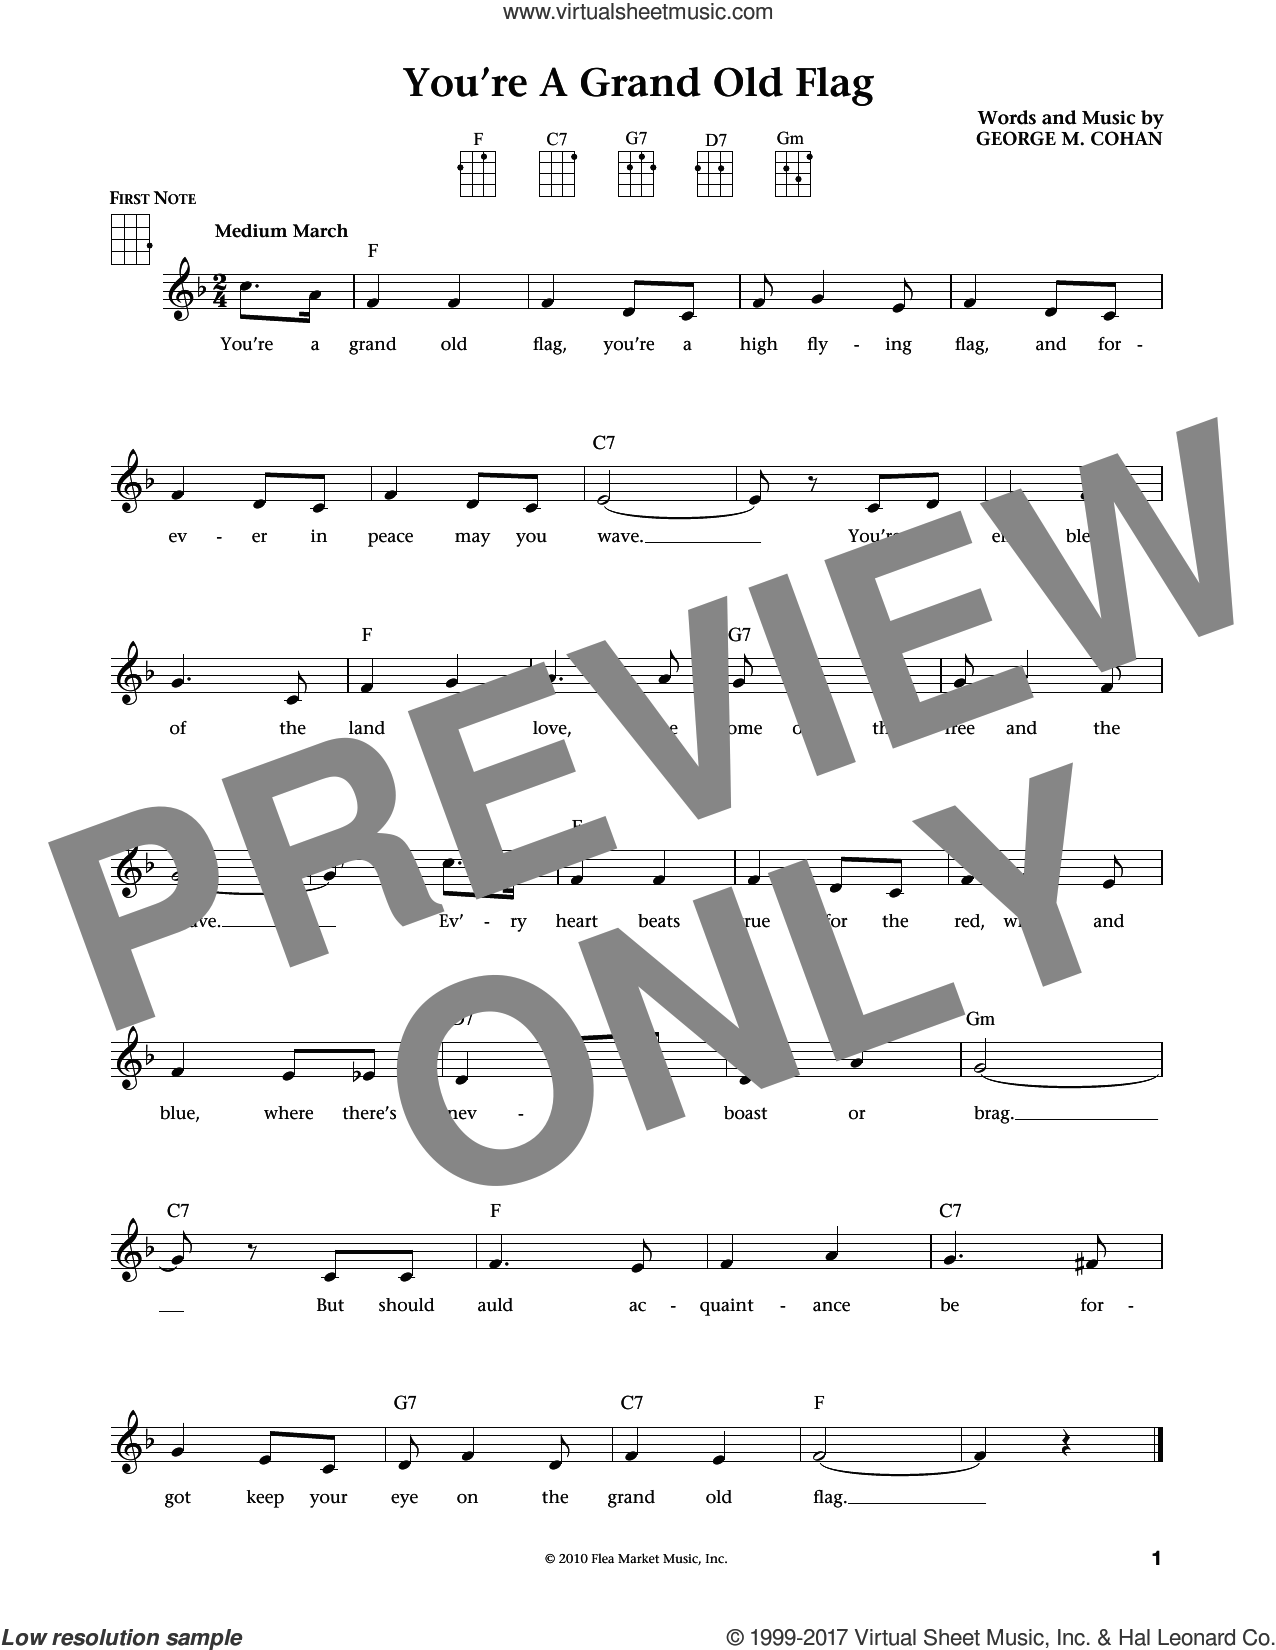 You're A Grand Old Flag sheet music for ukulele by George Cohan, Jim Beloff and Liz Beloff, intermediate skill level